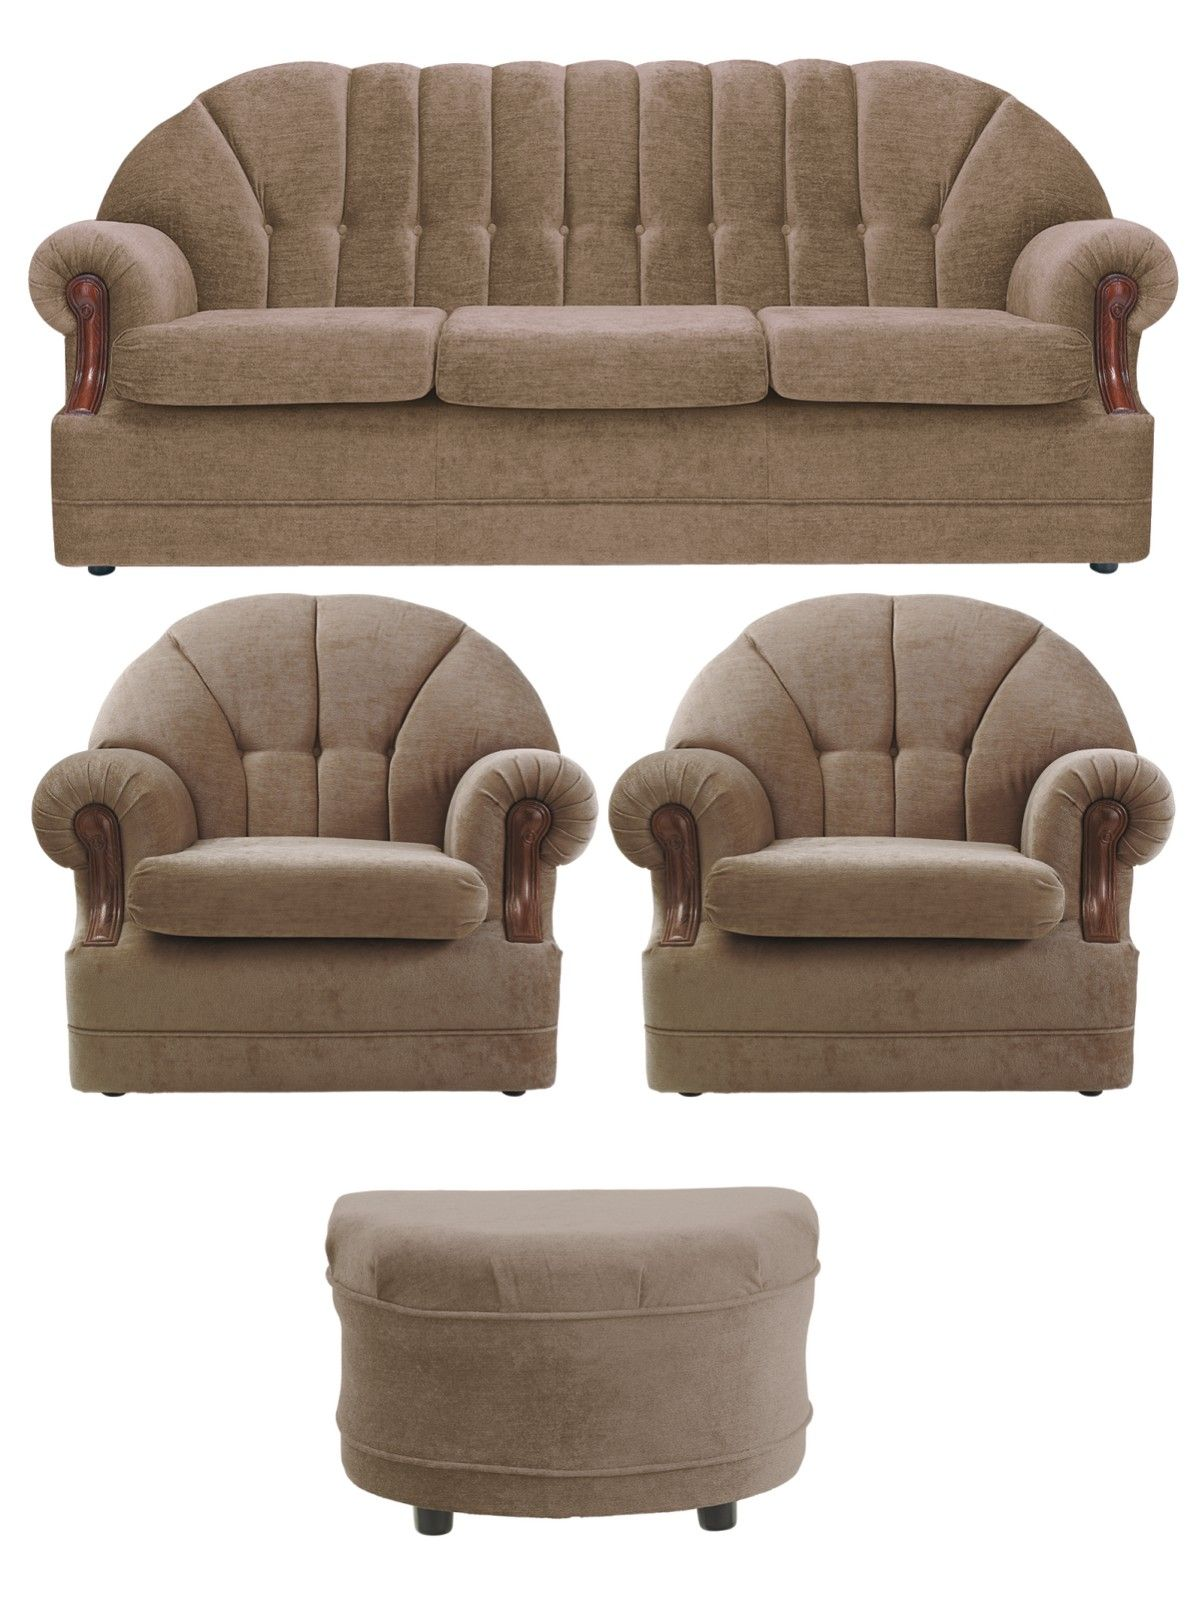 Stupendous Wexford 3 Seater Sofa 2 Armchairs Footstool Buy And Spiritservingveterans Wood Chair Design Ideas Spiritservingveteransorg